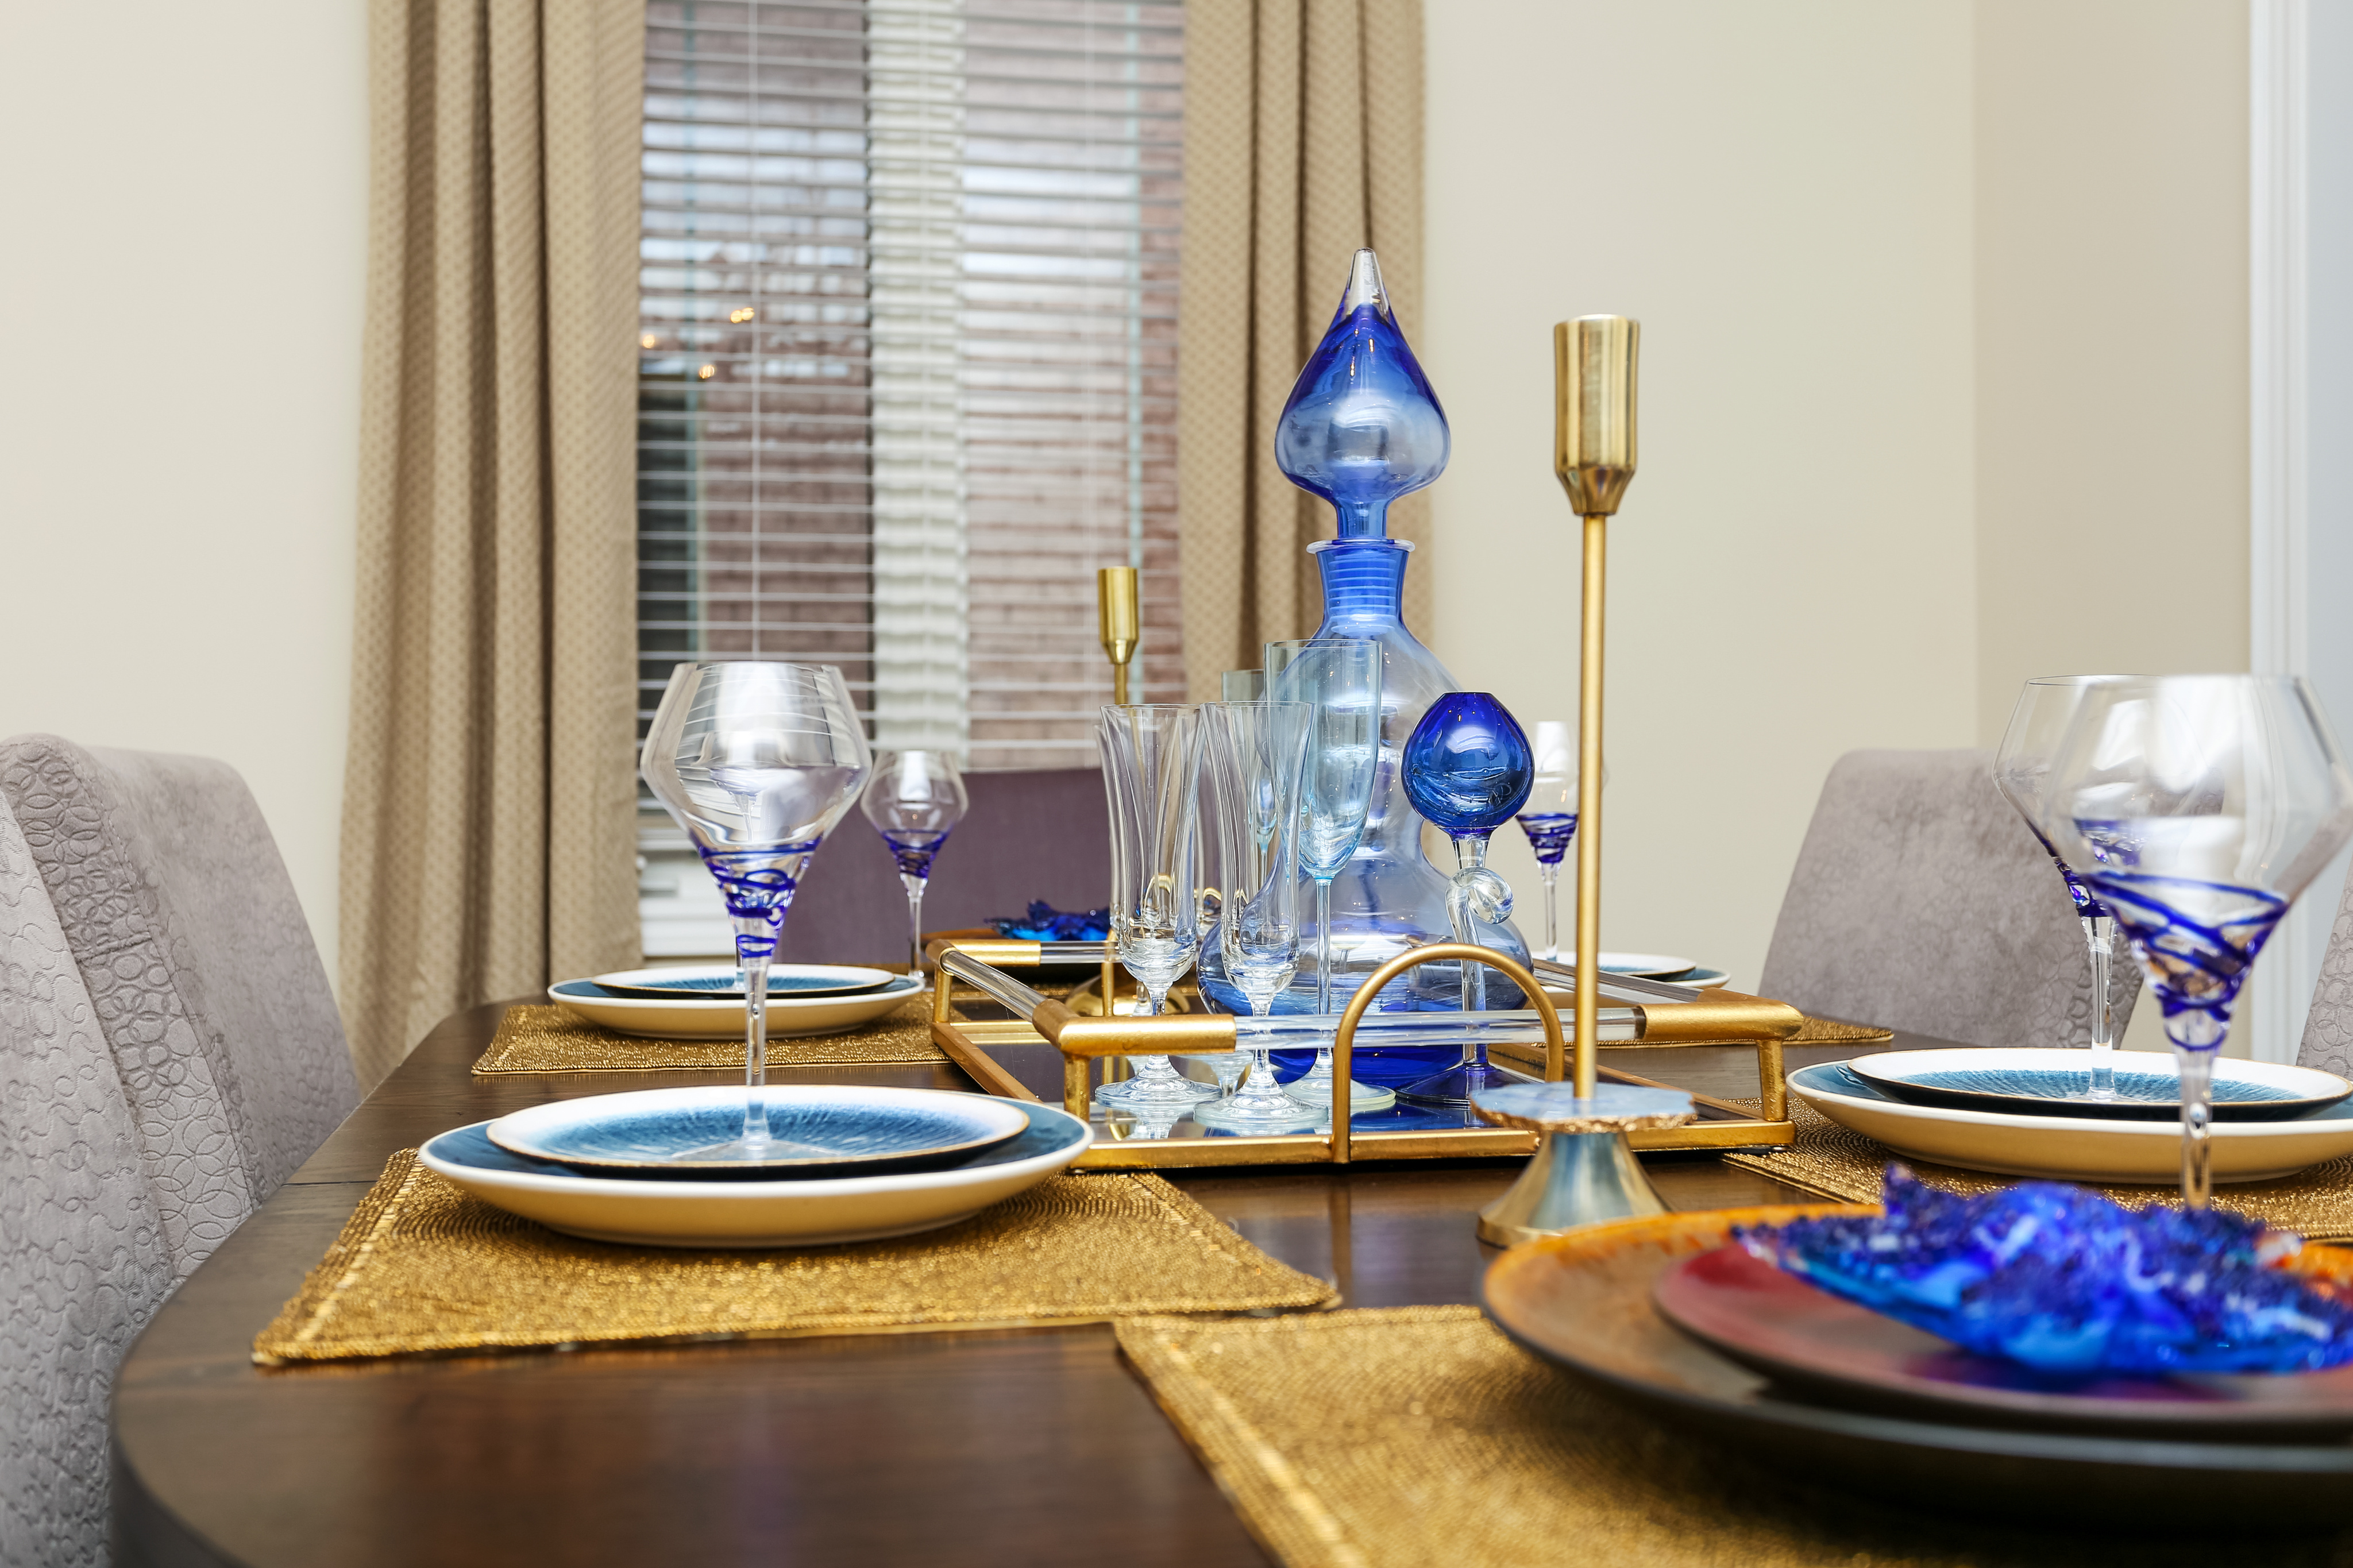 Dining Room setting with blue accents